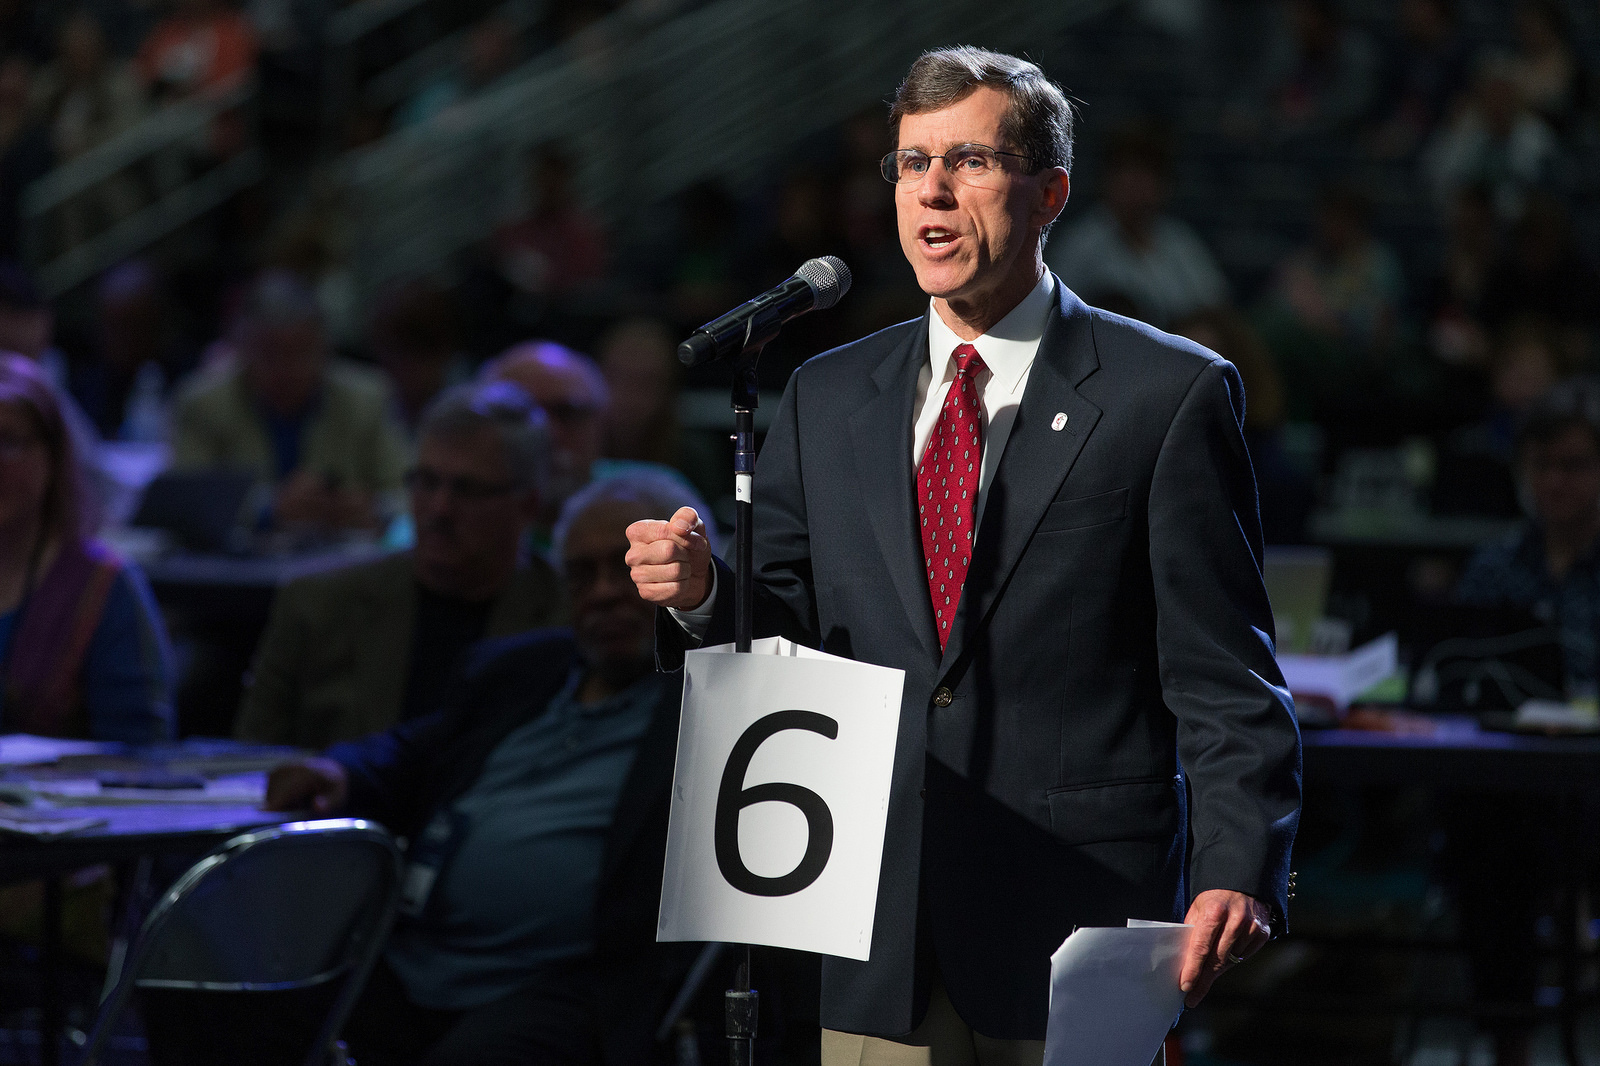 Brian Hammons of the Missouri Conference helps deliver the laity address during the 2016 United Methodist General Conference in Portland, Ore. Photo by Mike DuBose, UMNS